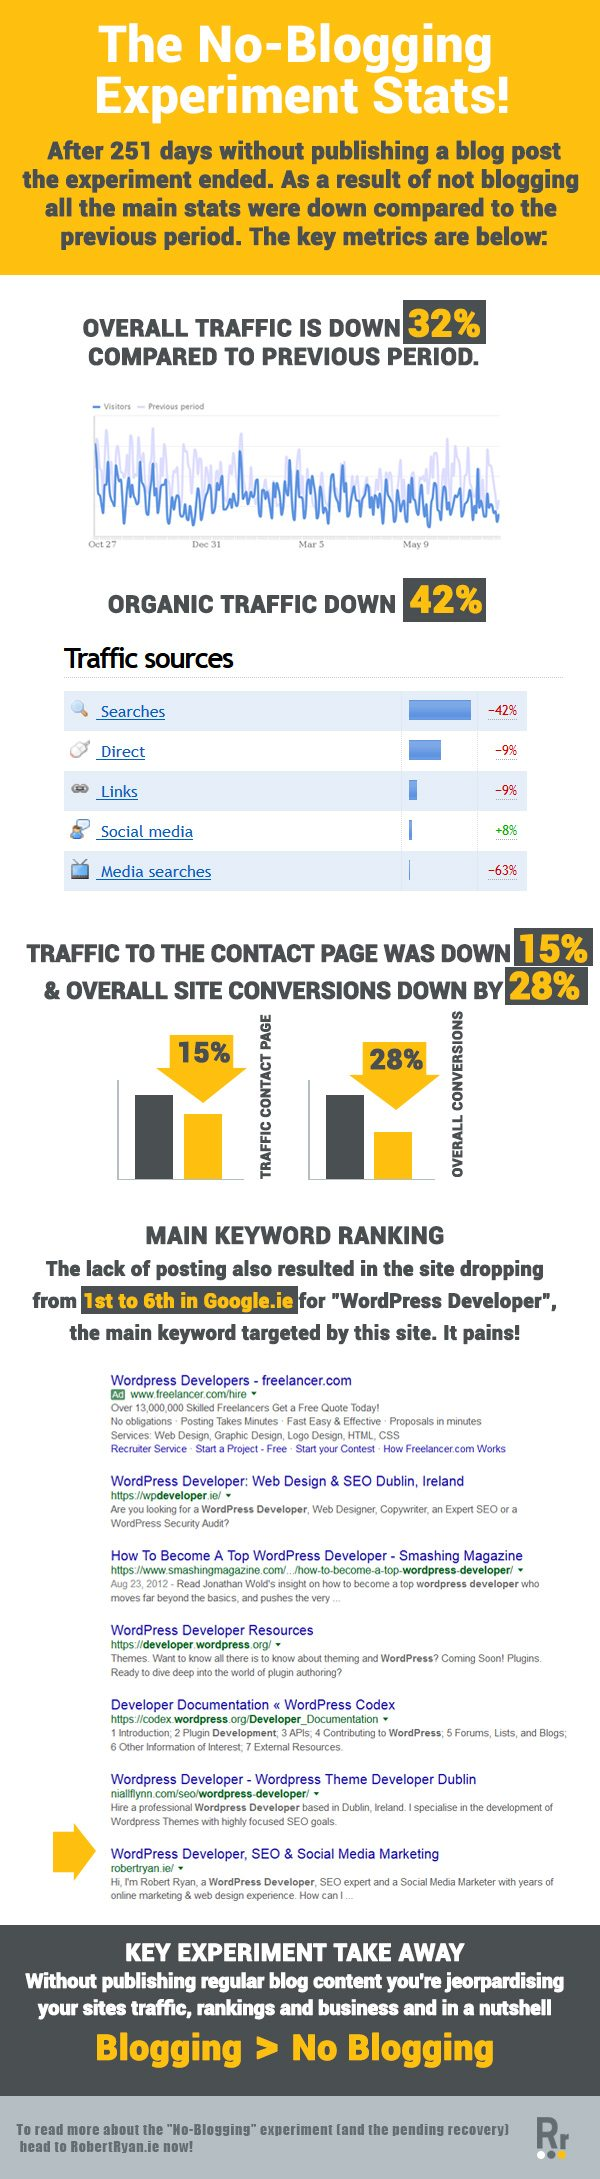 The No-Blogging Experiment Stats - What Happens SEO With No Blogging